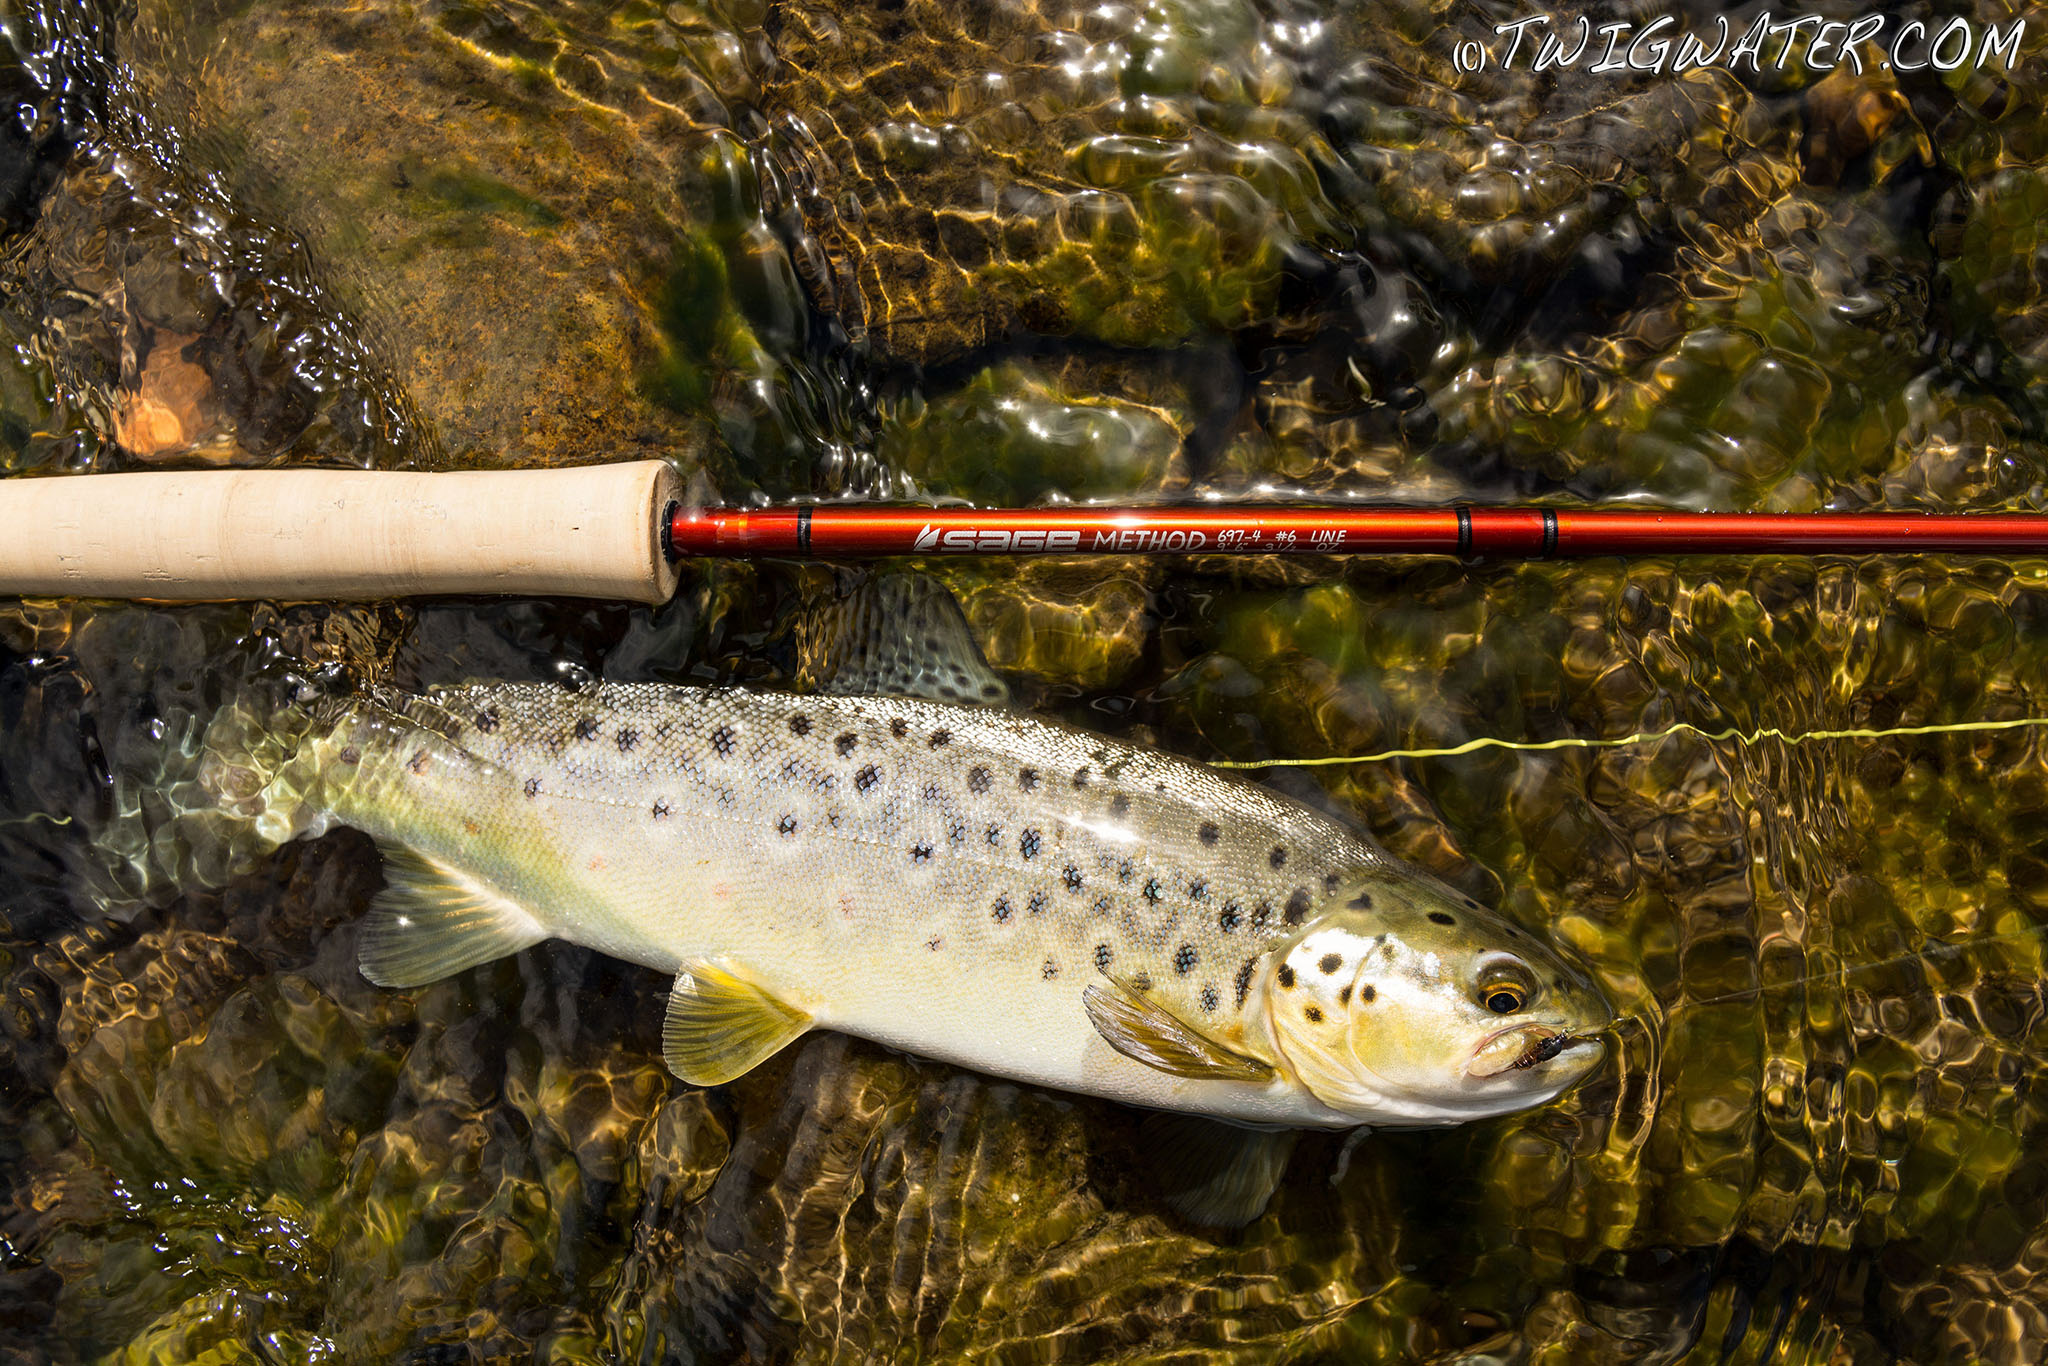 Sage Method #6 fly rod review on Twigwater